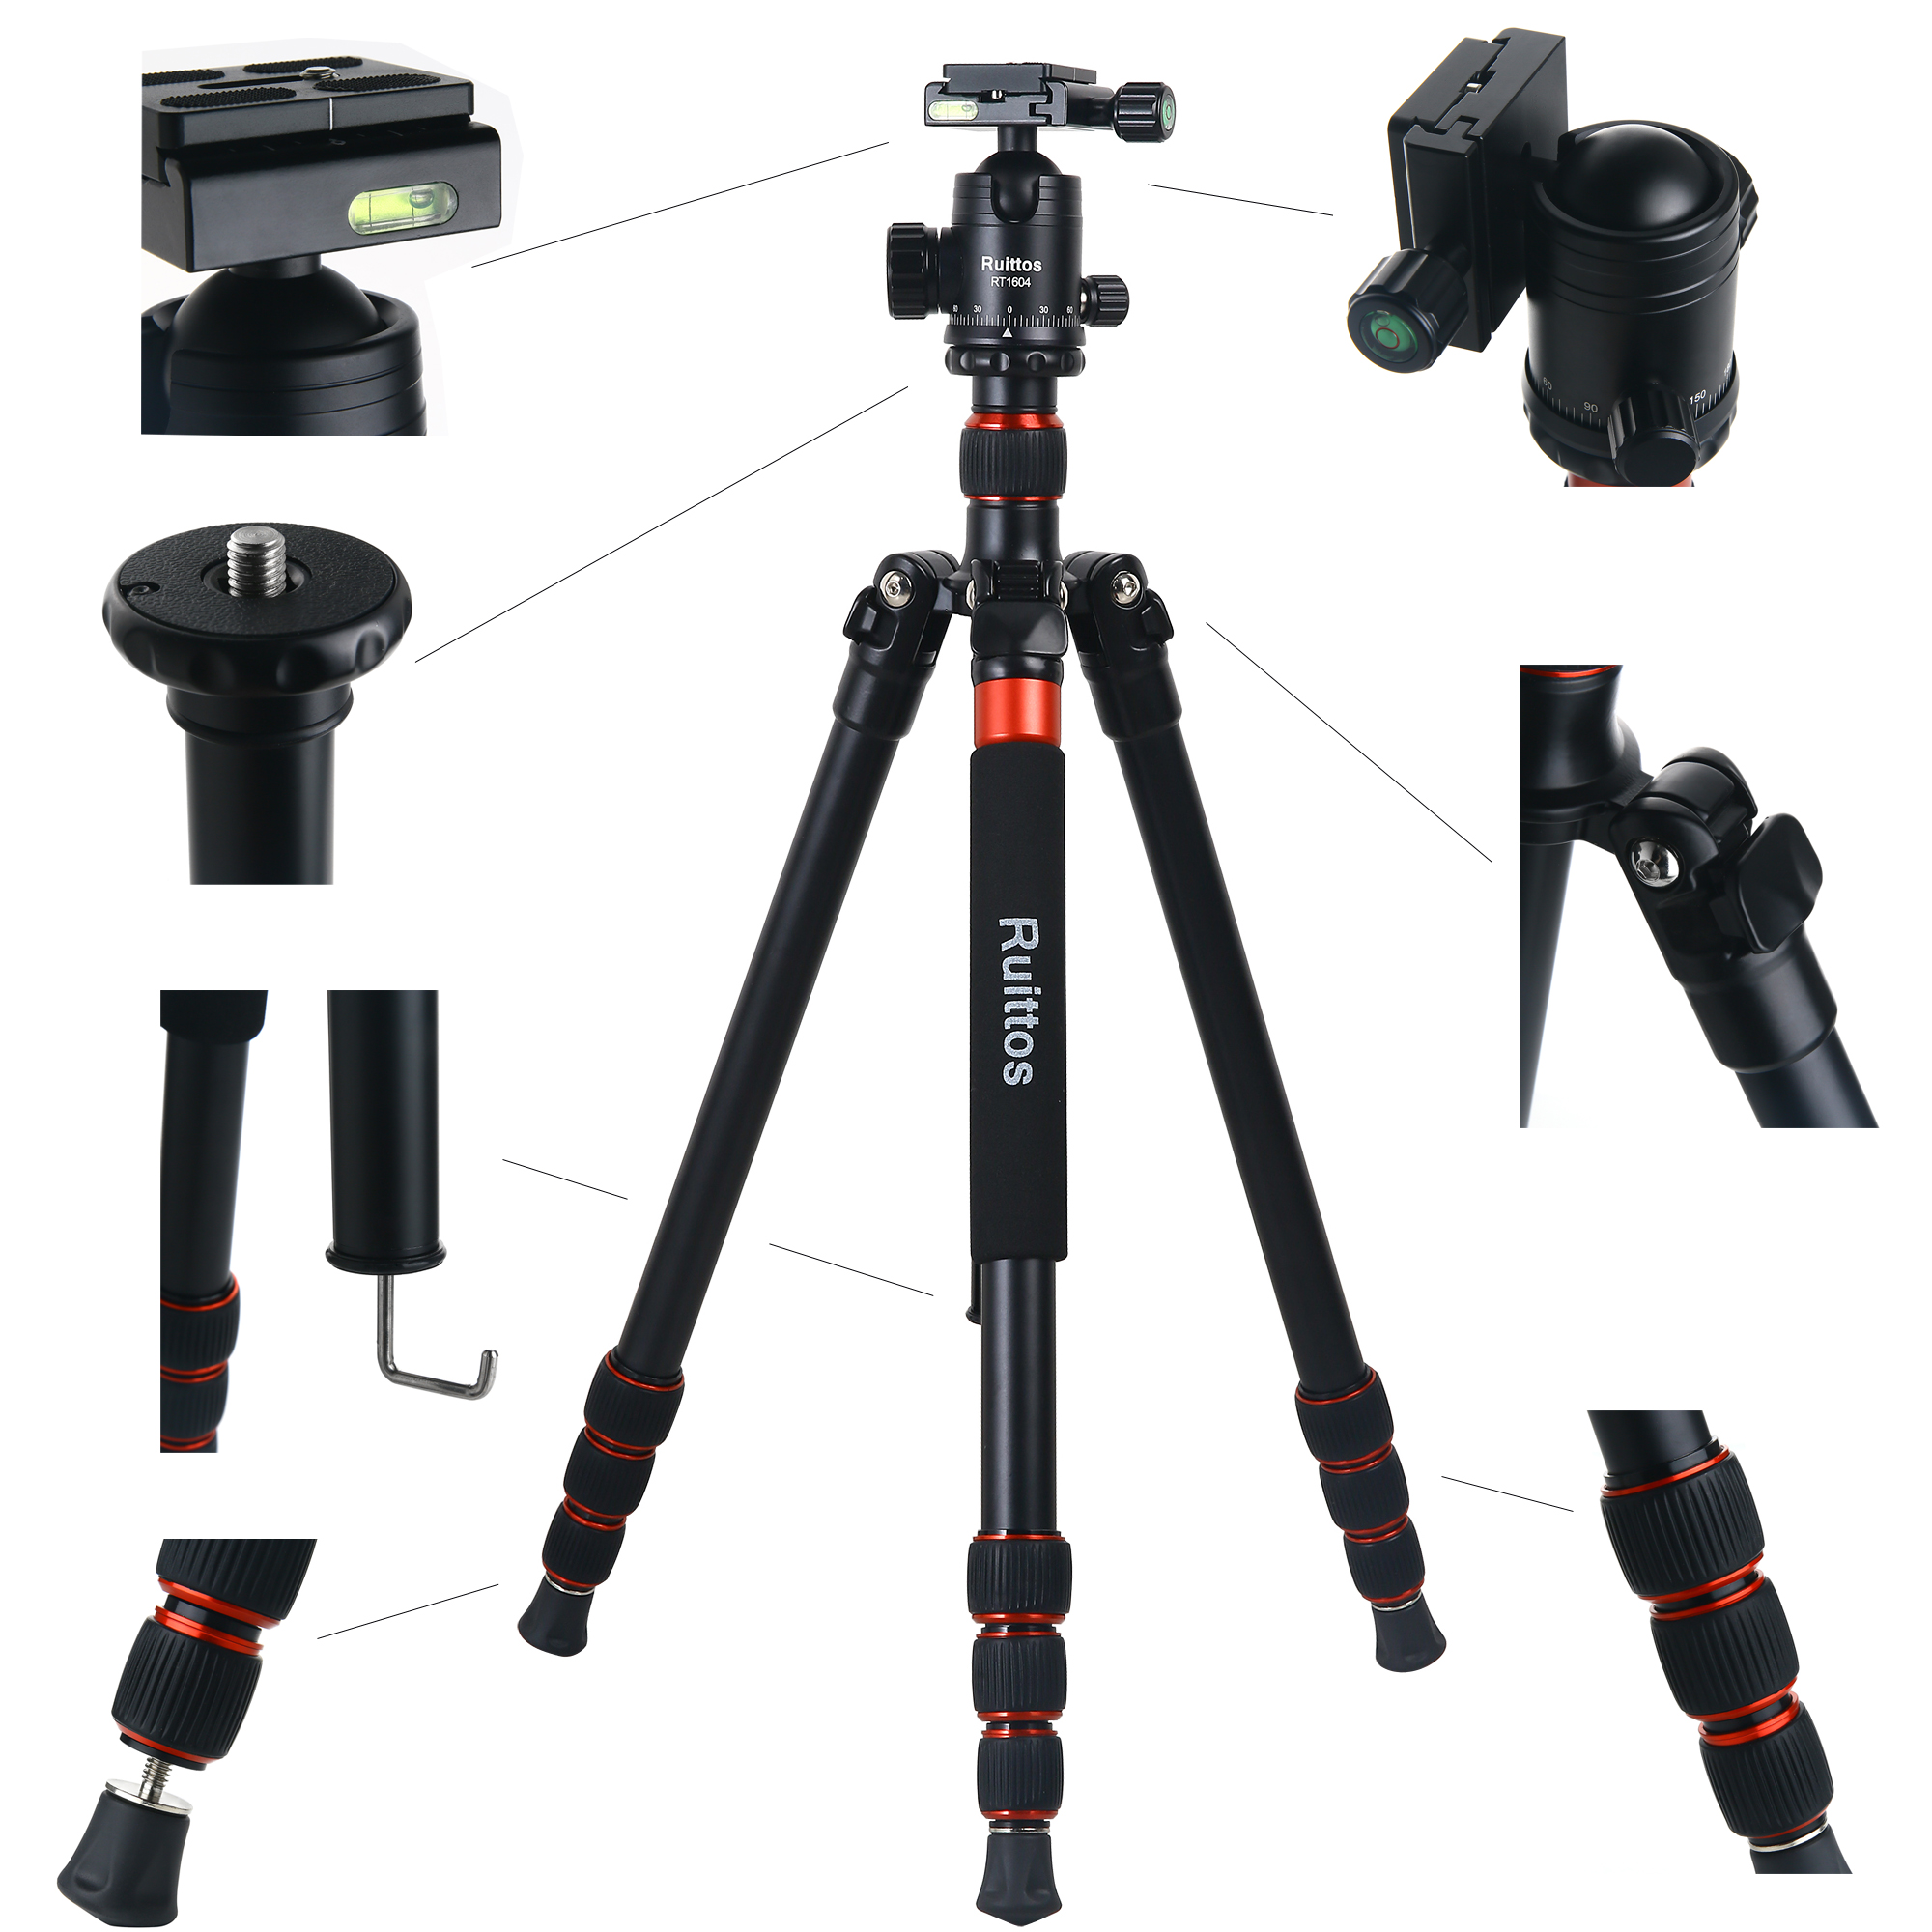 Z818 Tripods for Cameras 65 Aluminium Alloy Monopod with 360 Panorama Ball Head Quick Release Plate Ball for DSLR Canon Sony Nikon Cameras Blue ZOMEi Tall Tripod,Camera Tripod for DSLR